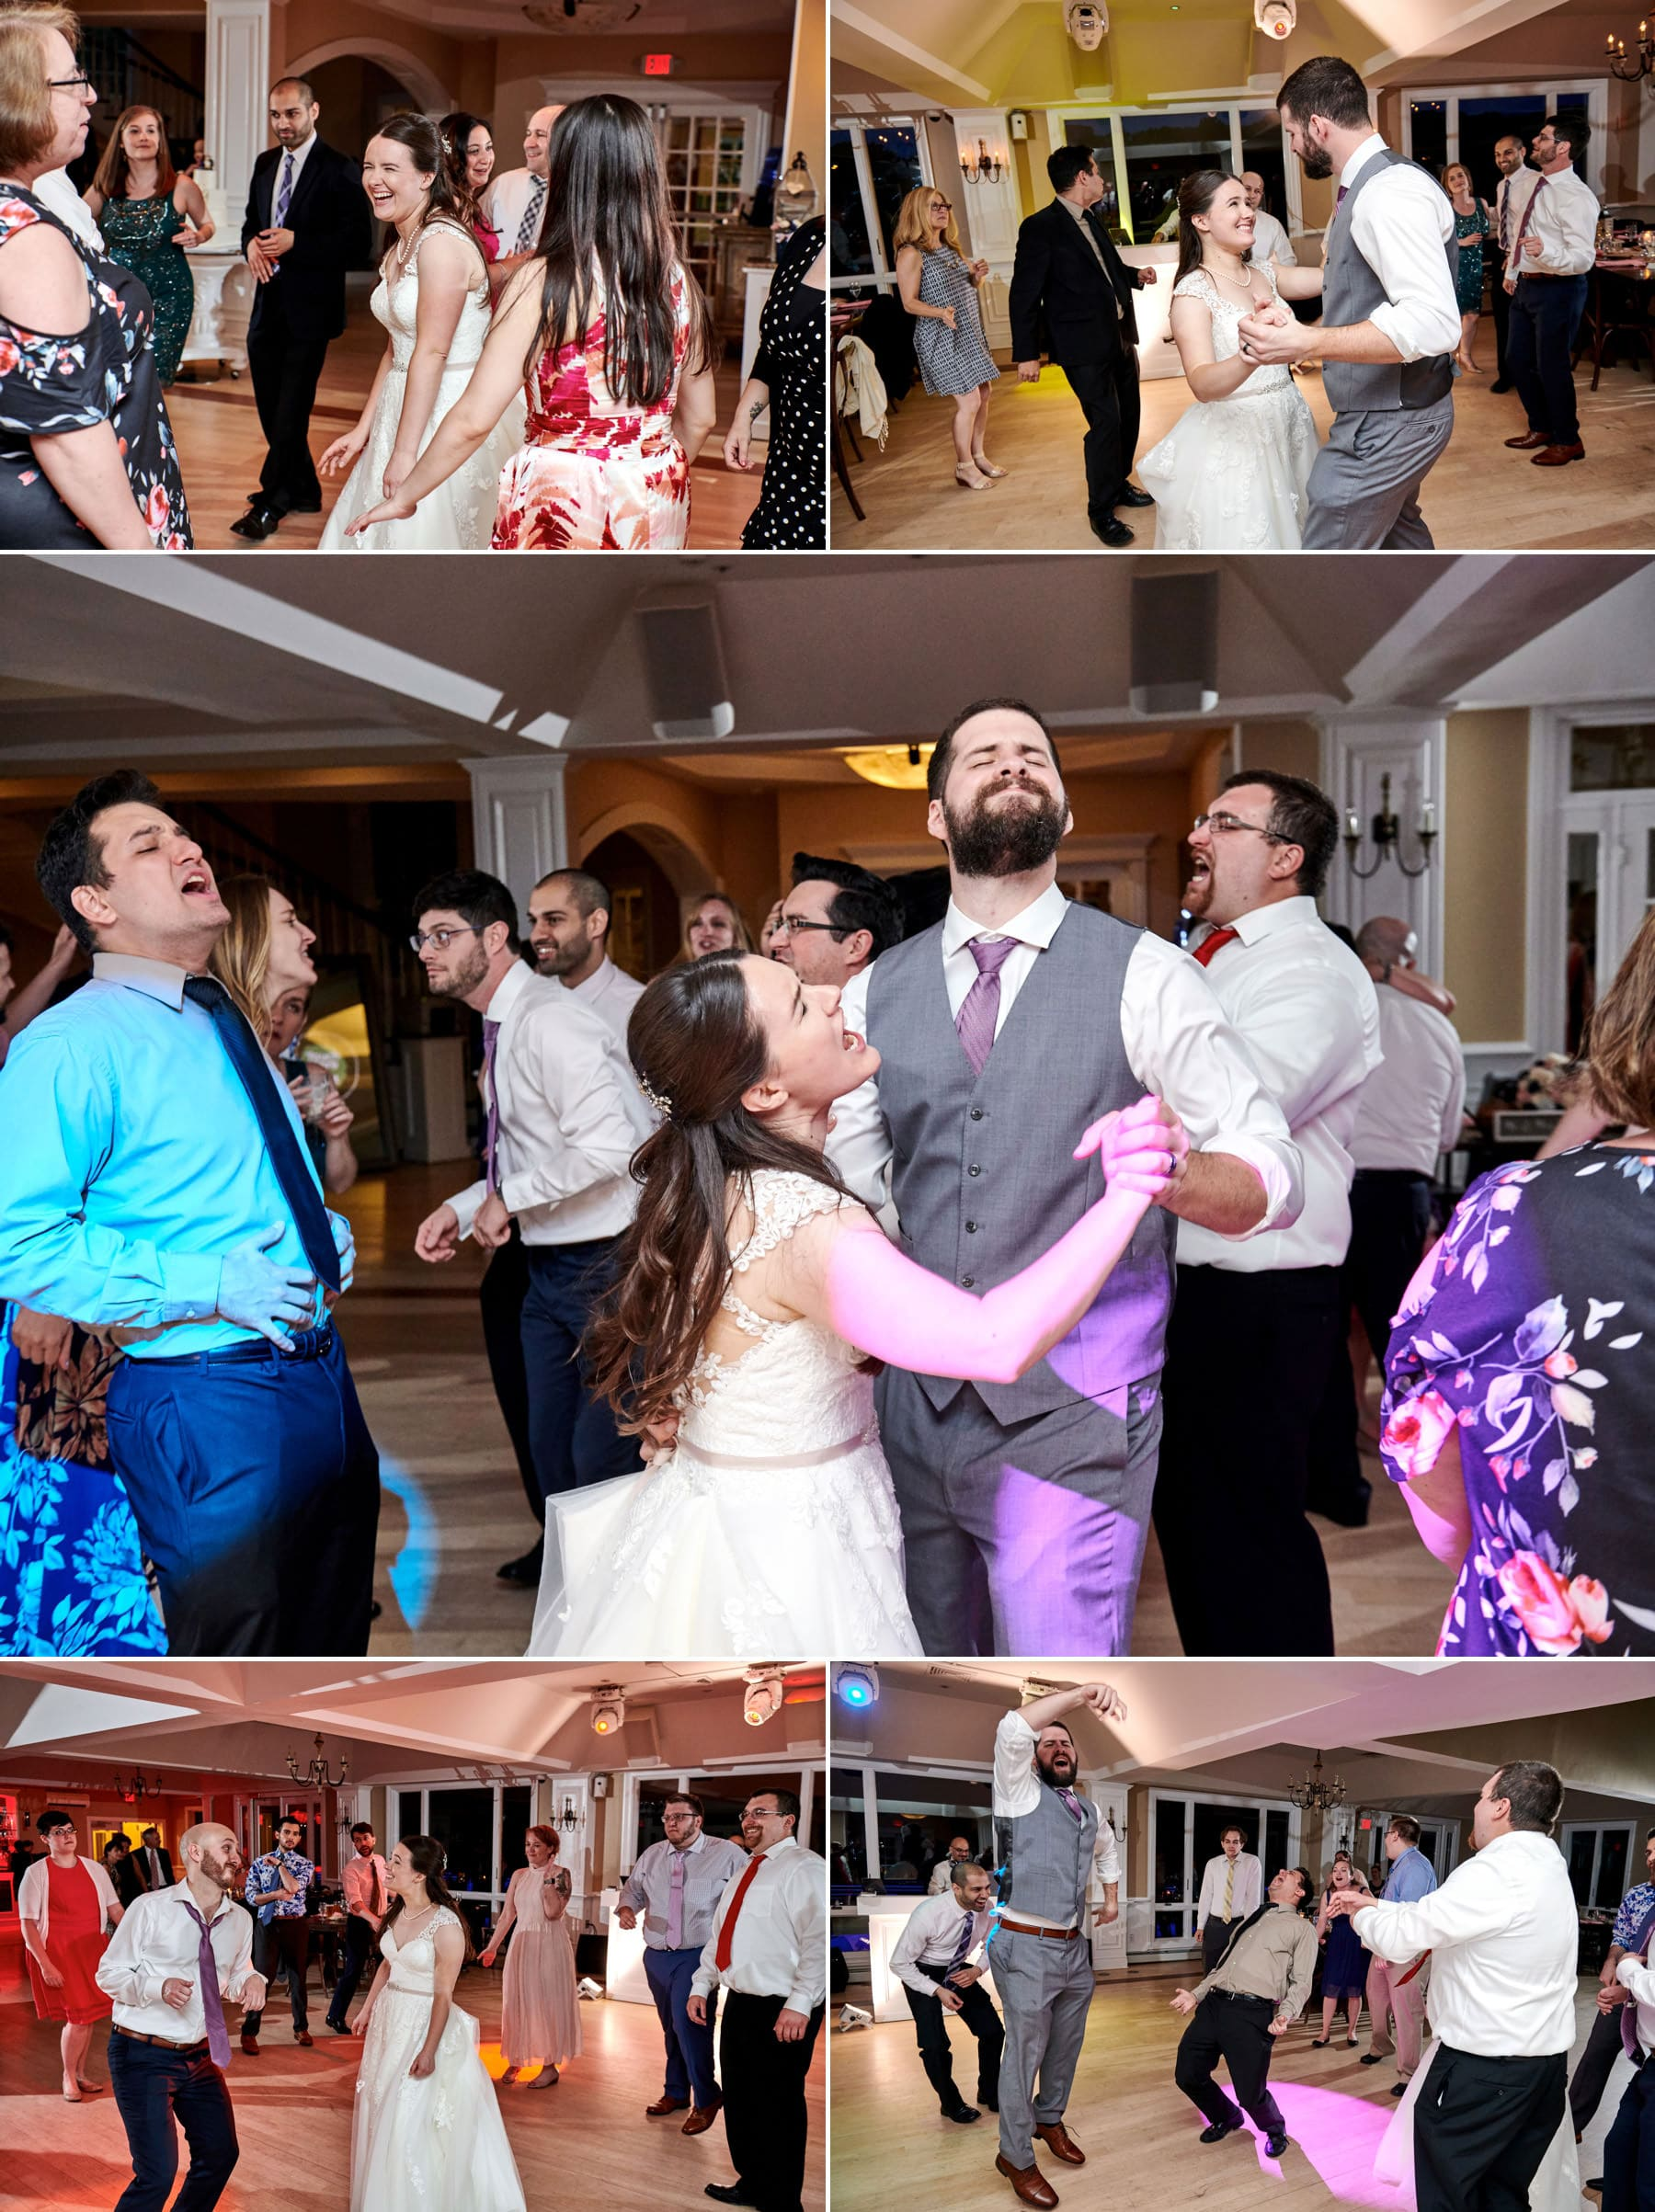 wedding reception dance photos at Rock Island Lake Club